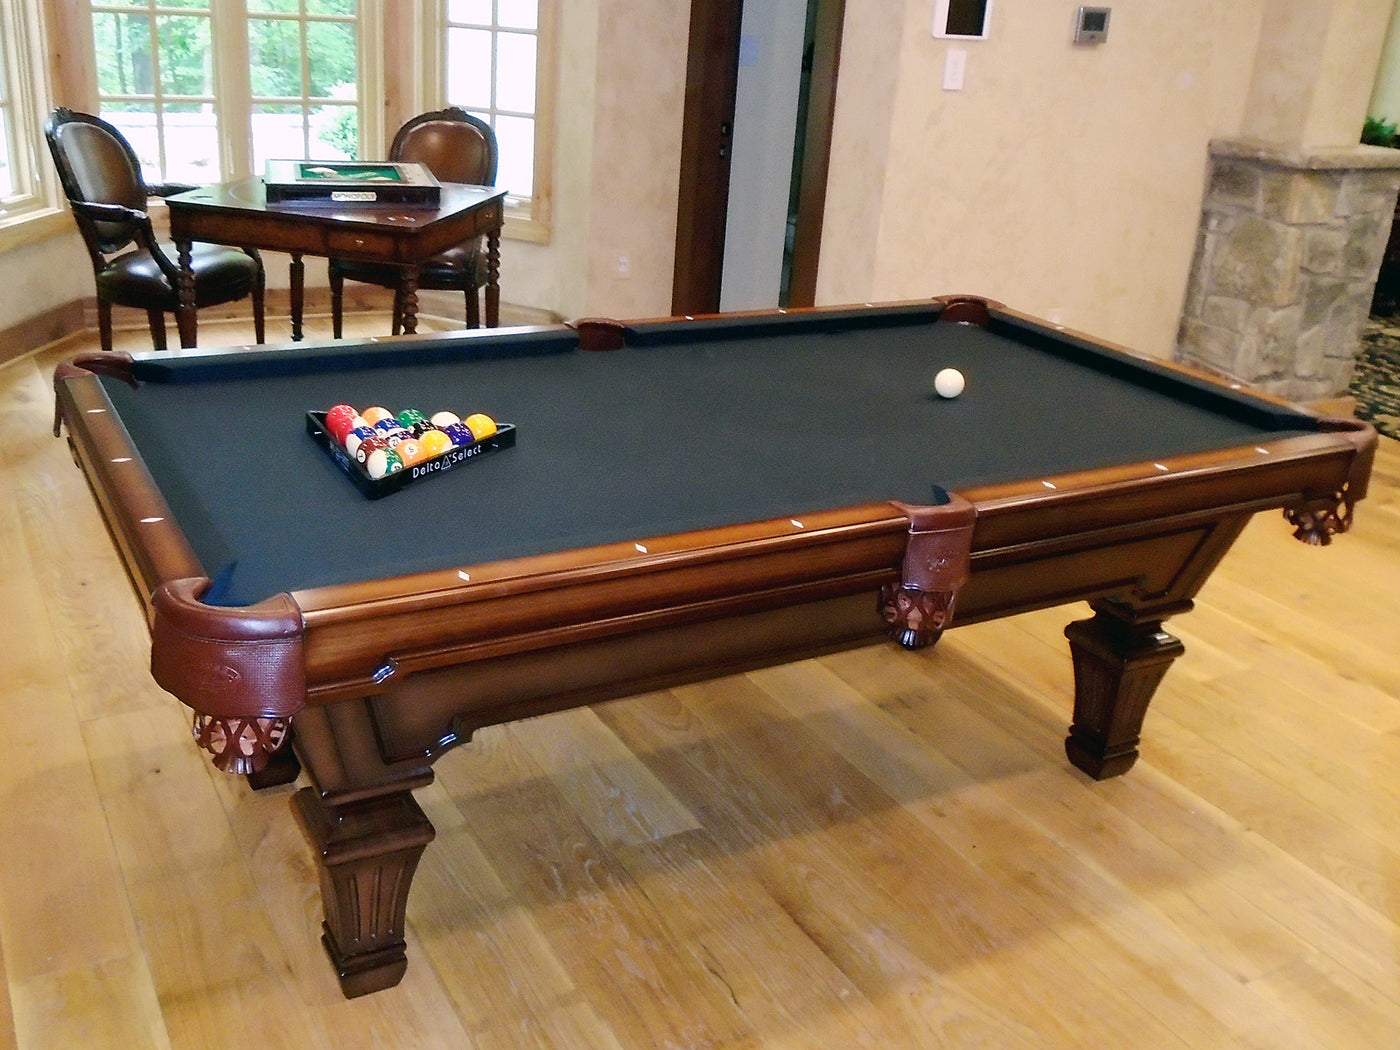 Olhausen Hampton Pool Table Robbies Billiards